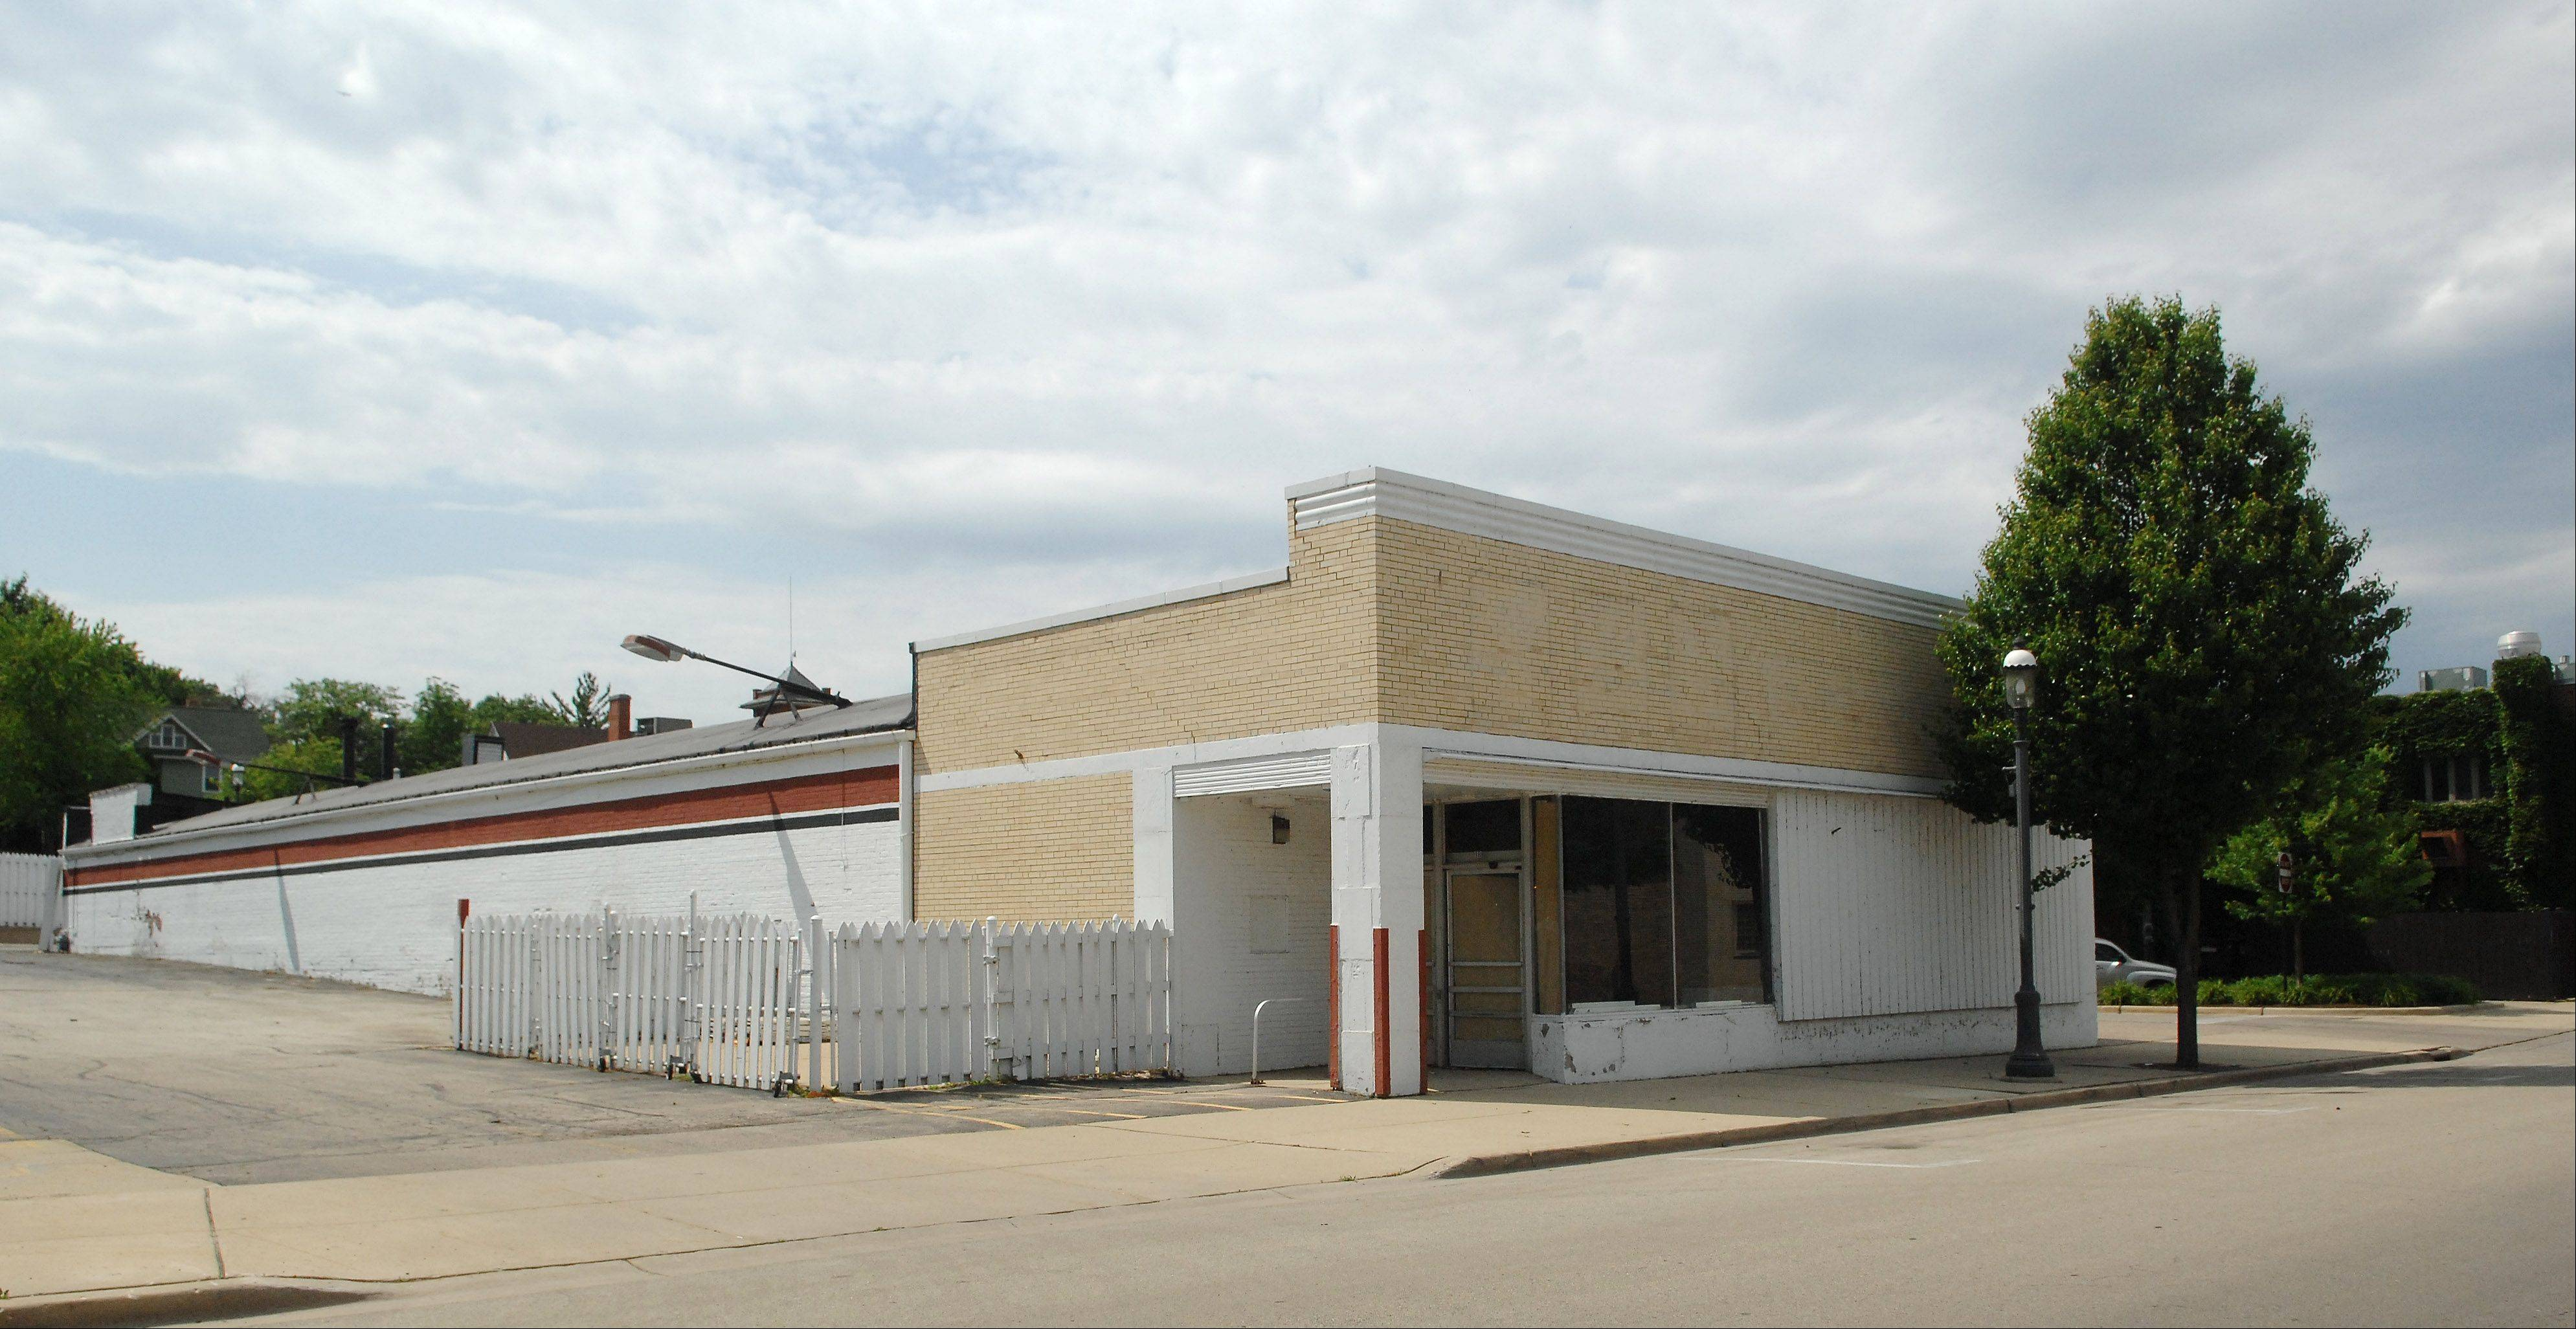 The former Ziegler´s Ace Hardware store in West Dundee is expected to be reborn as a performing arts center.